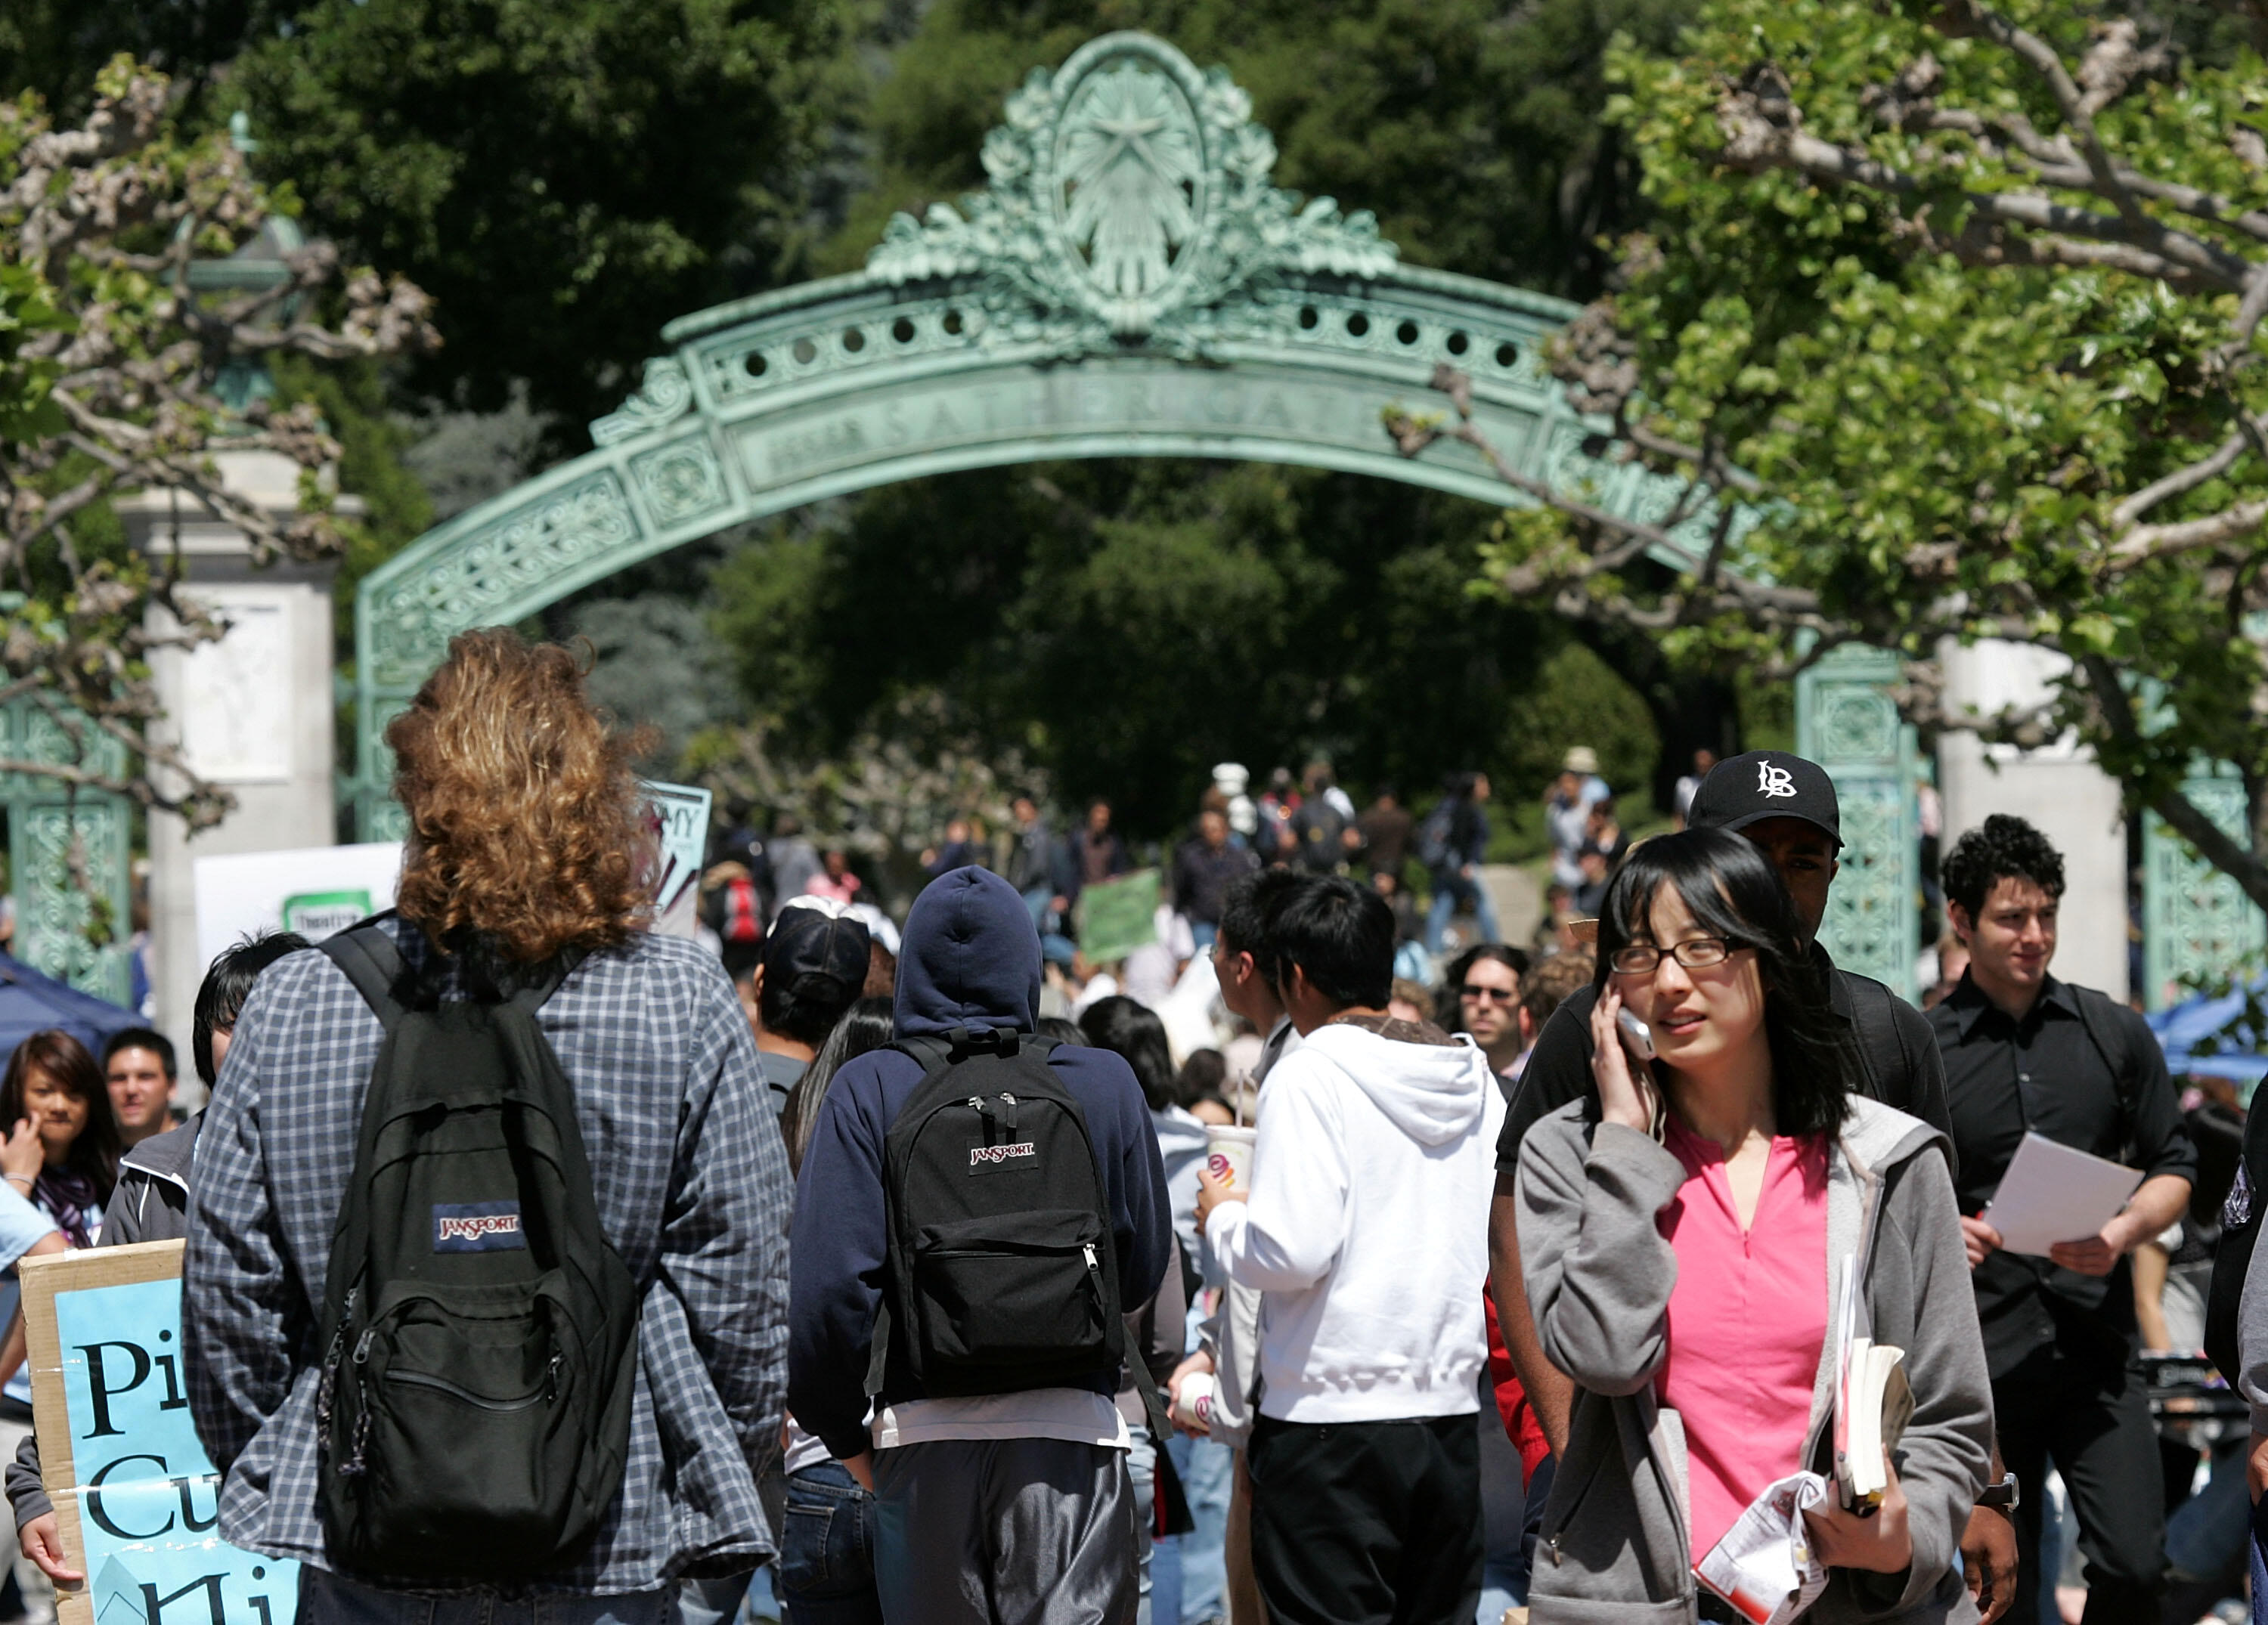 BERKELEY, CA - APRIL 17:  UC Berkeley students walk through Sather Gate on the UC Berkeley campus April 17, 2007 in Berkeley, California.  Robert Dynes, President of the University of California, said the University of California campuses across the state with reevaluate security and safety policies in the wake of the shooting massacare at Virginia Tech that left 33 people dead, including the gunman 23 year-old student Cho Seung-Hui.  (Photo by Justin Sullivan/Getty Images)